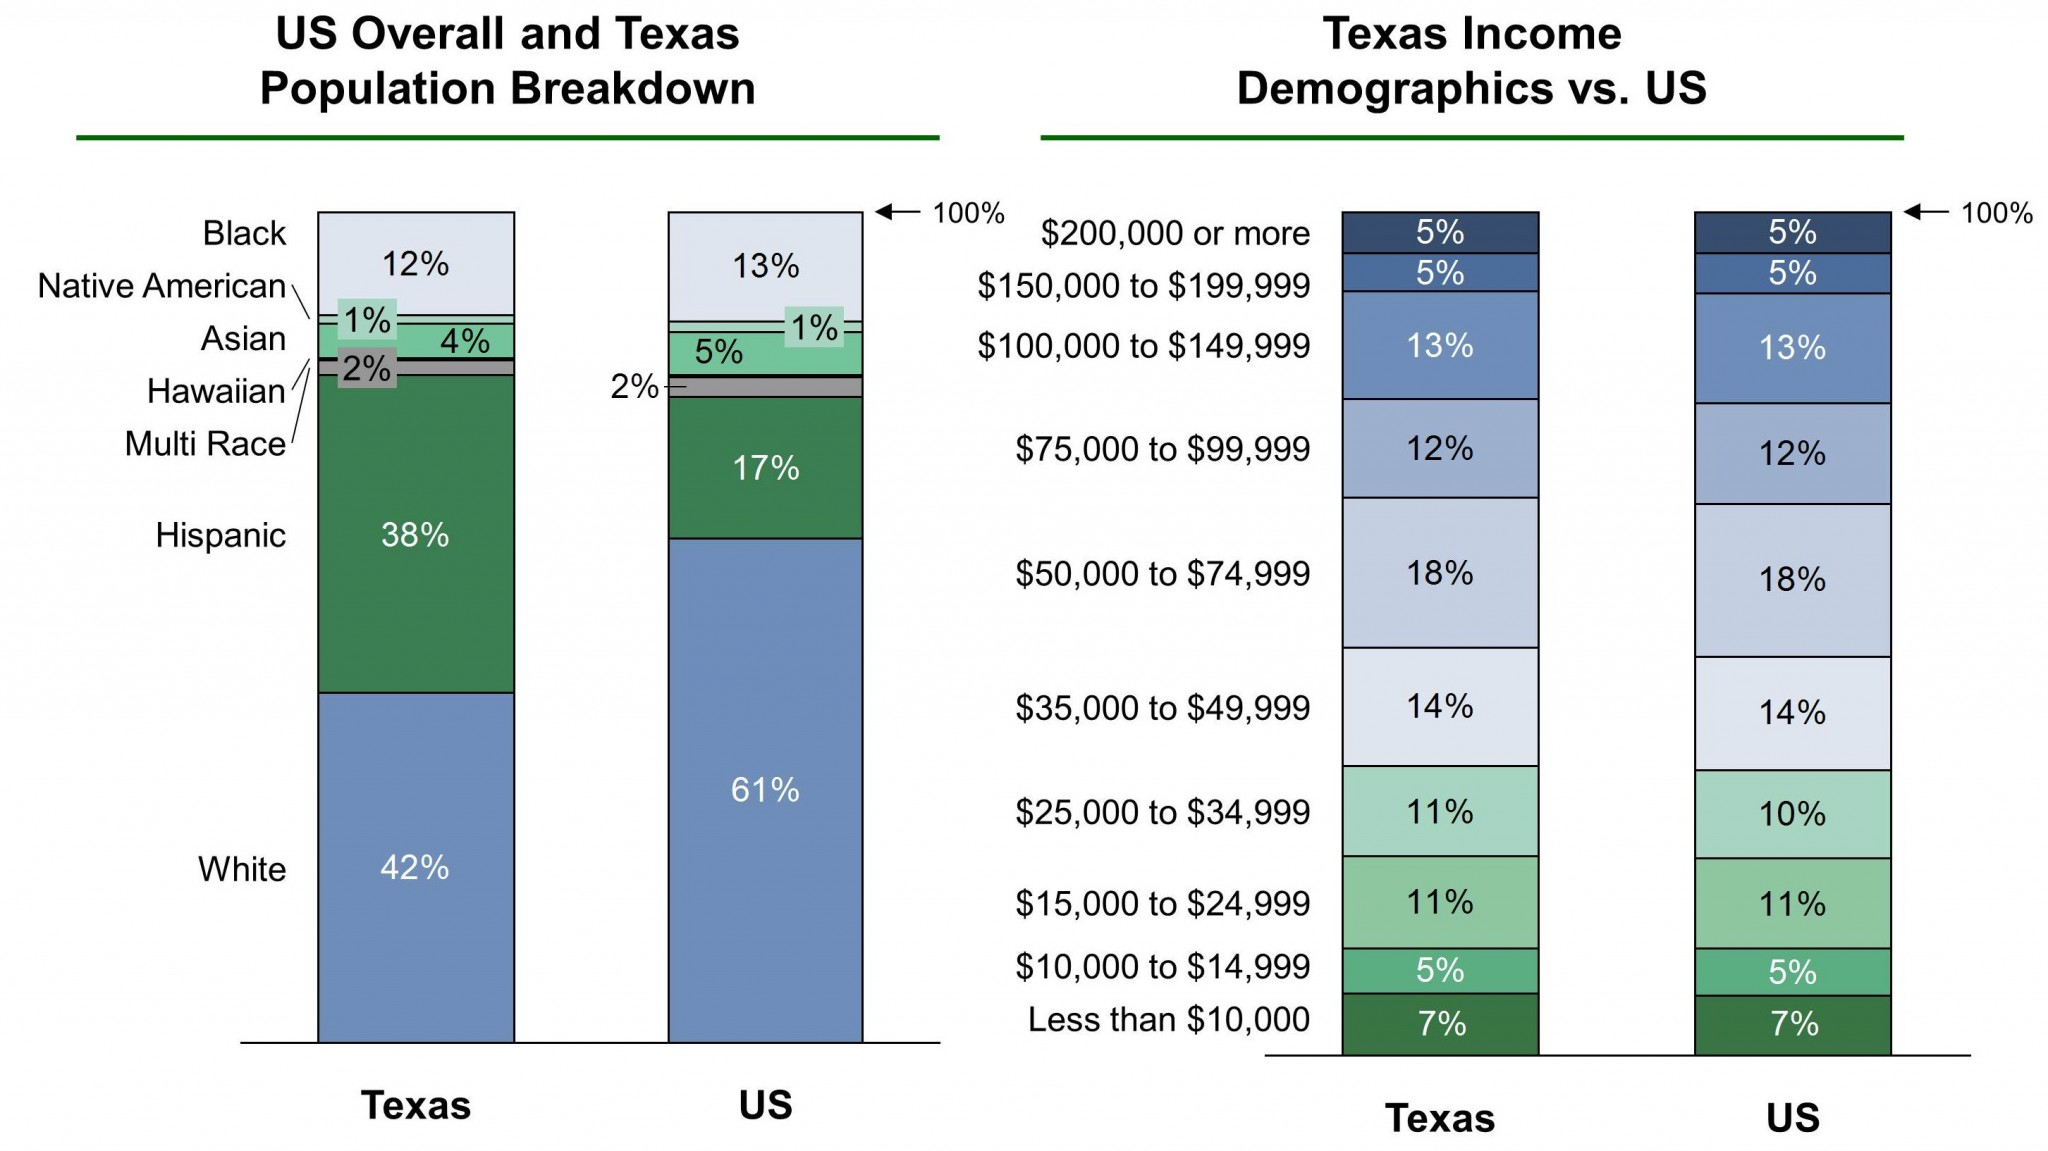 Texas EB-5 Regional Center Demographics VF